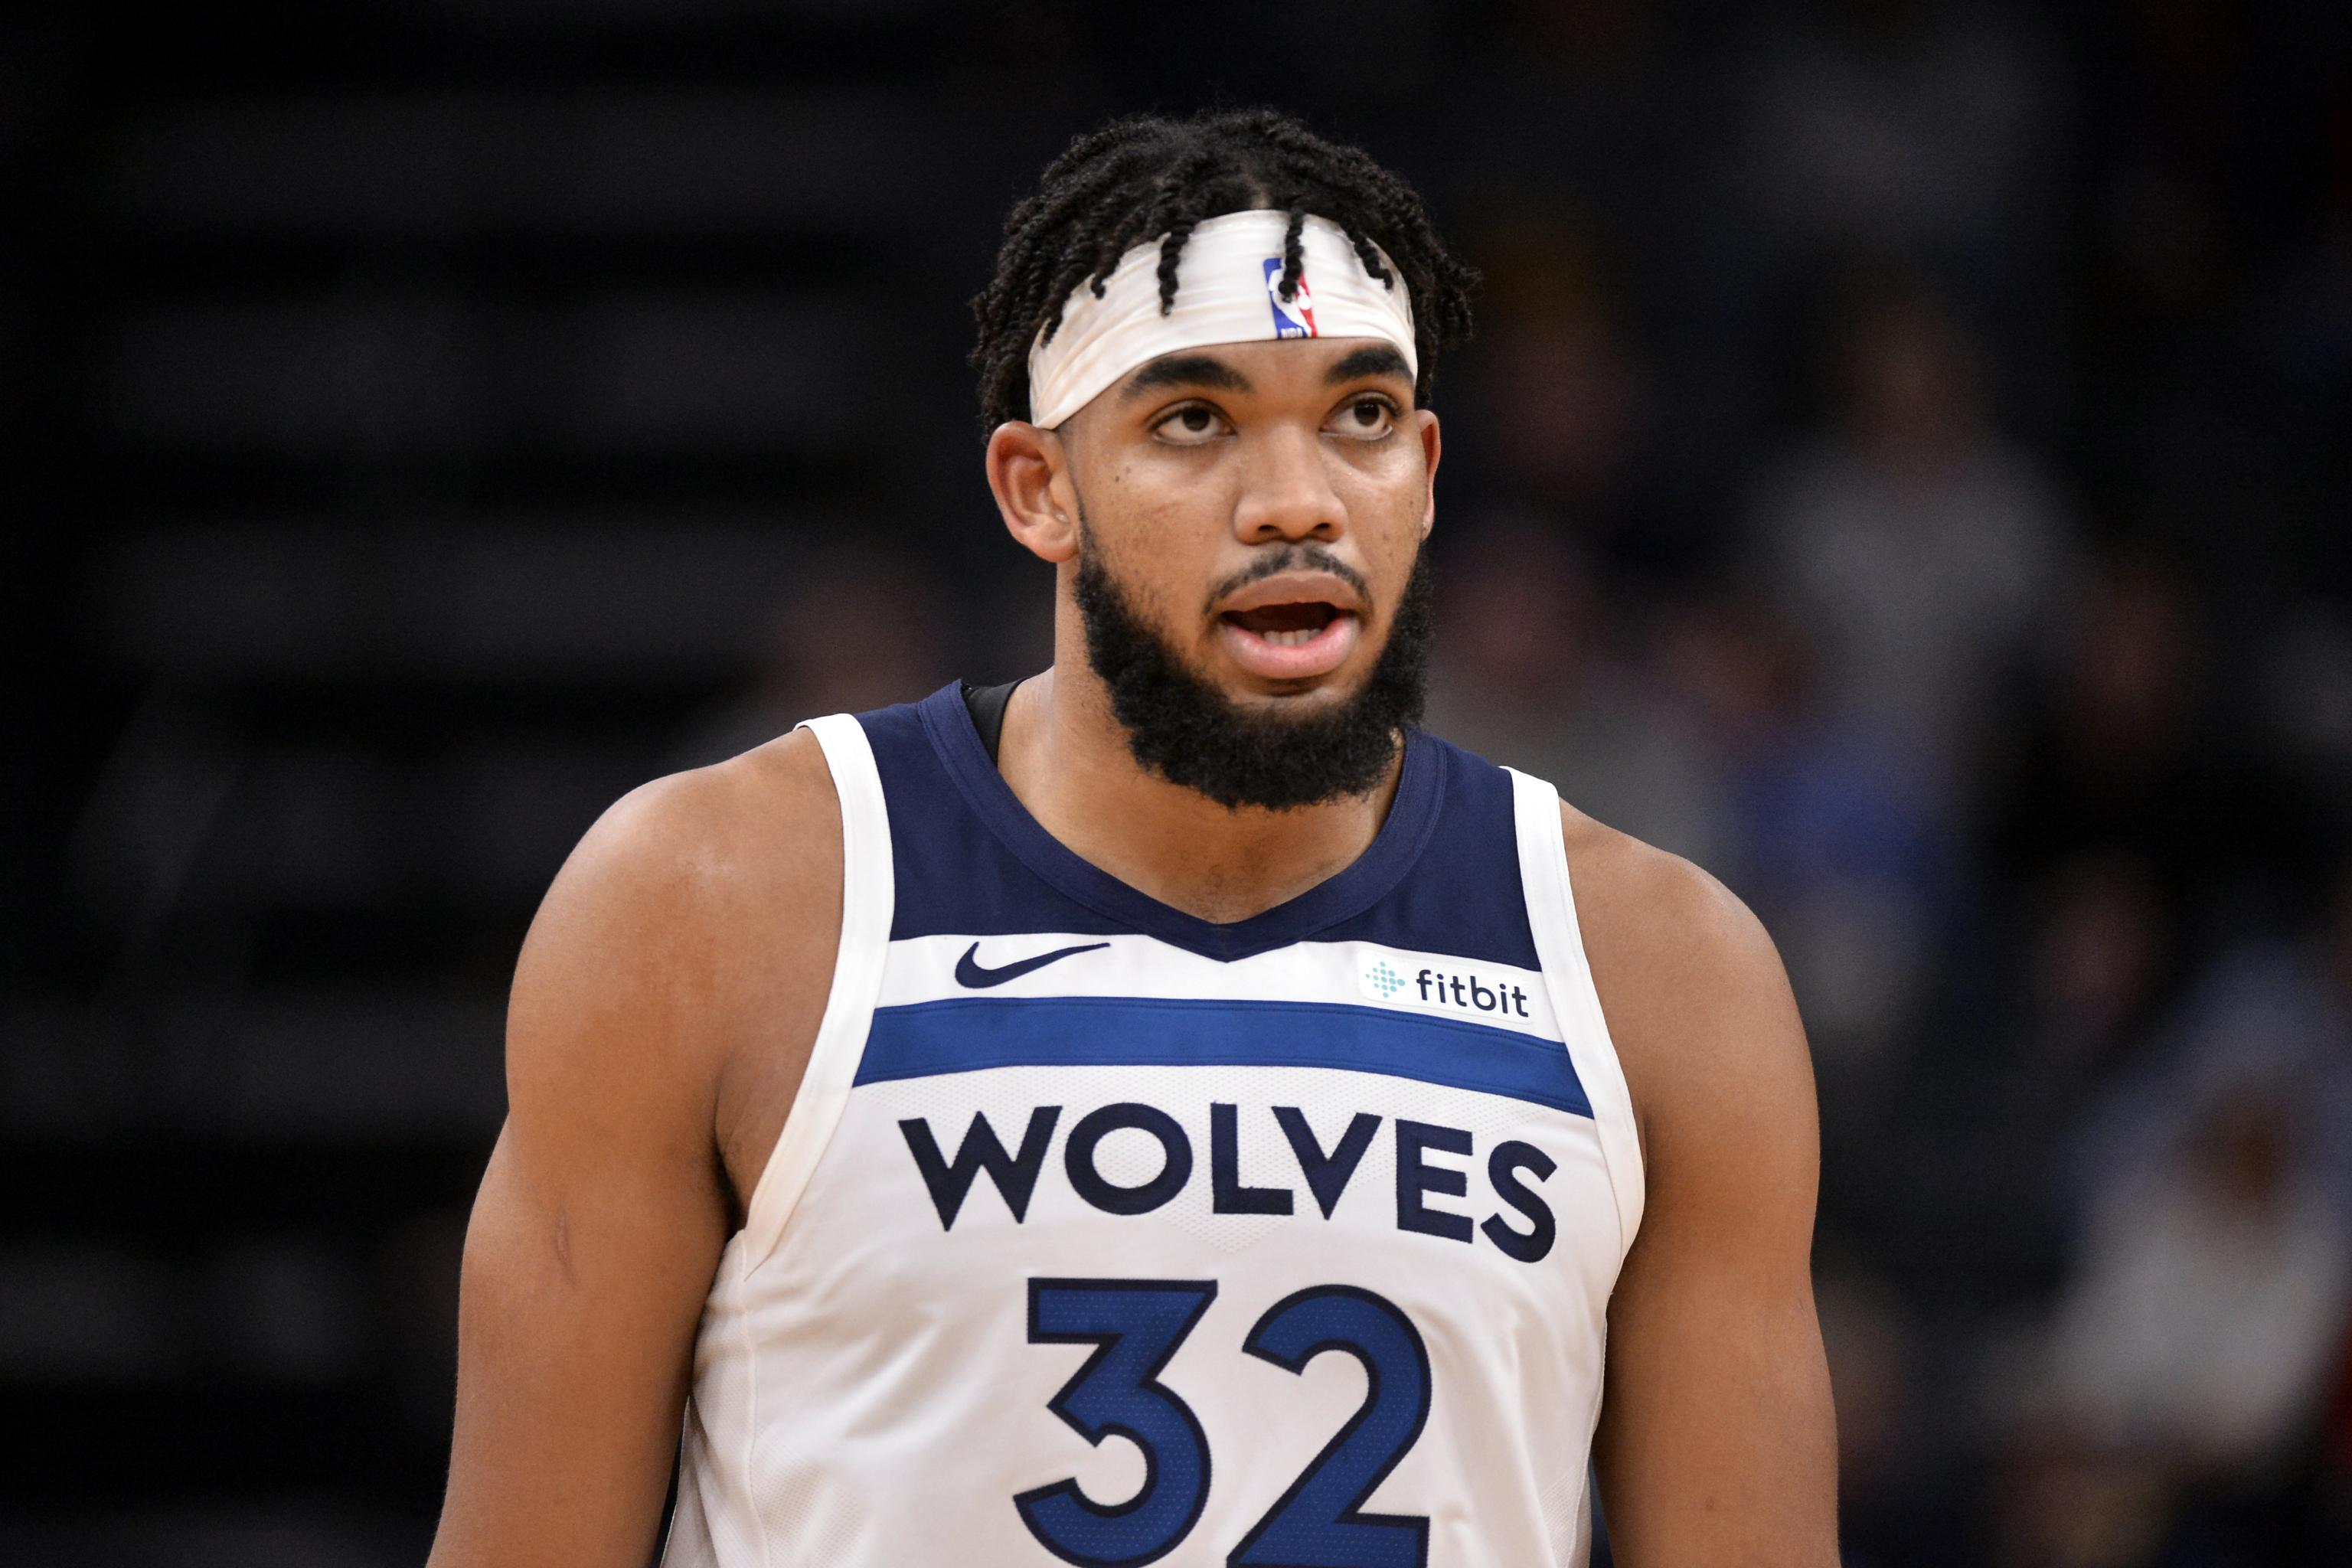 Karl Anthony Towns Says He Lost 7 Family Members To Covid 19 Including His Mom Bleacher Report Latest News Videos And Highlights